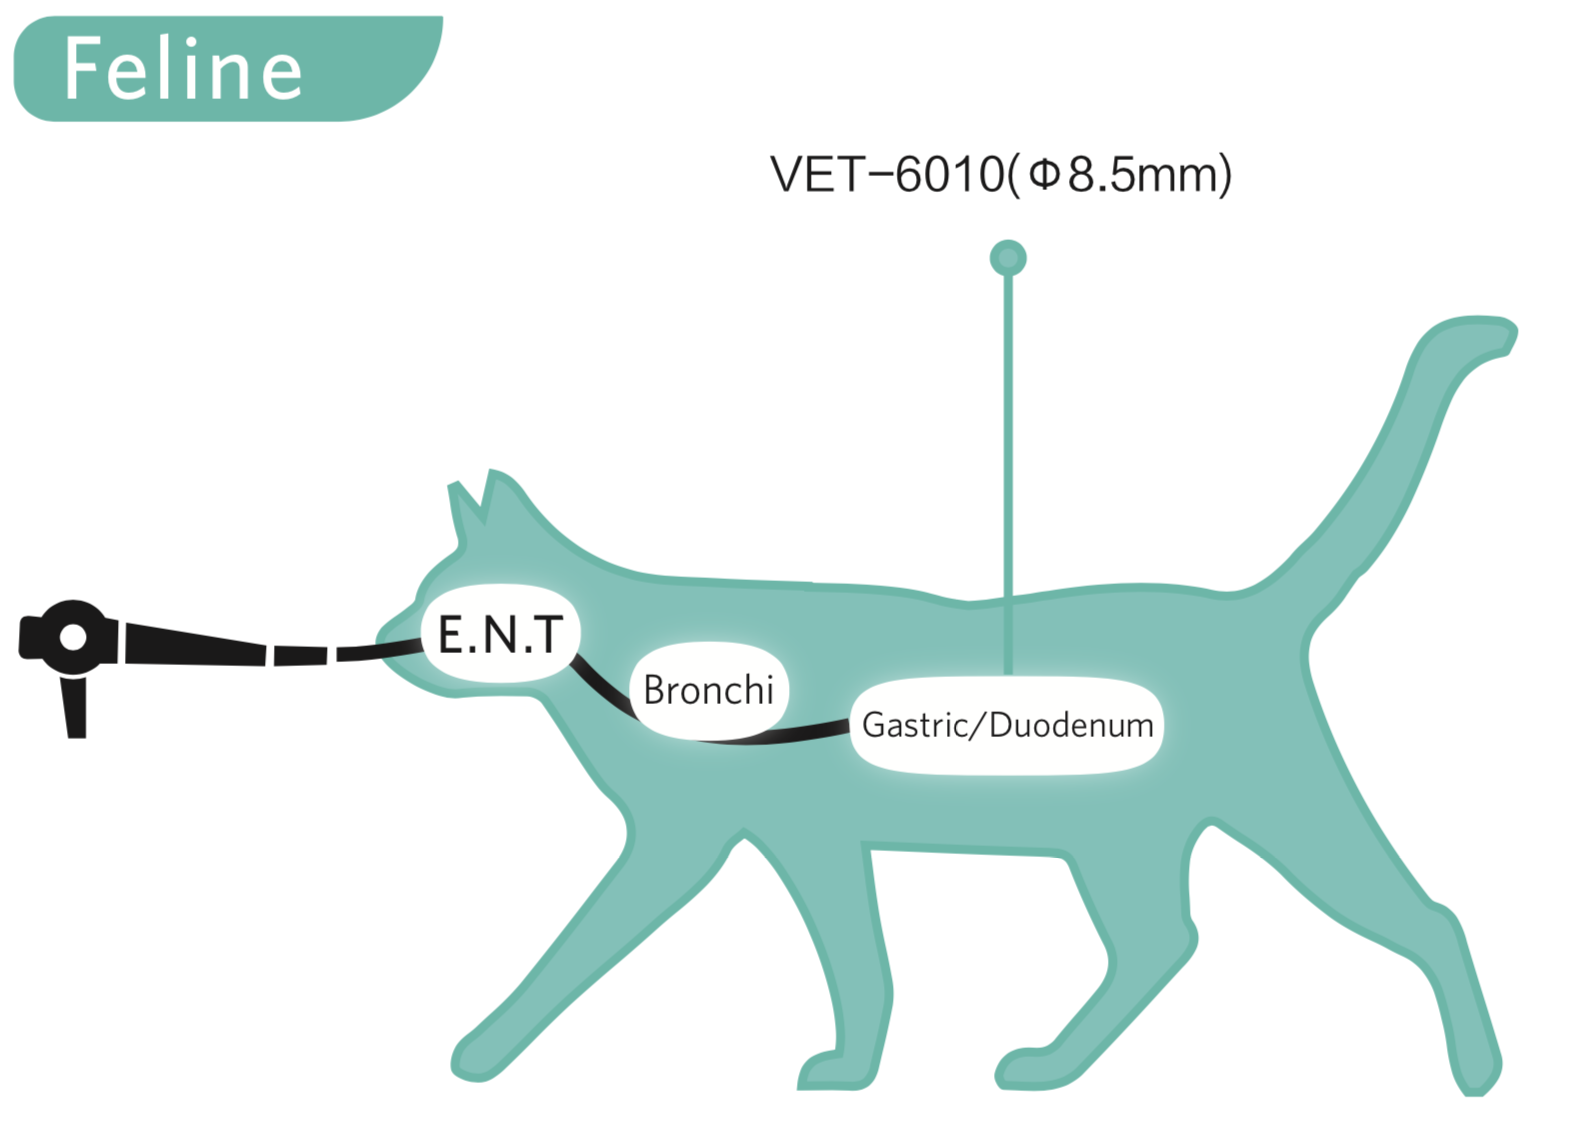 Feline Endoscopy